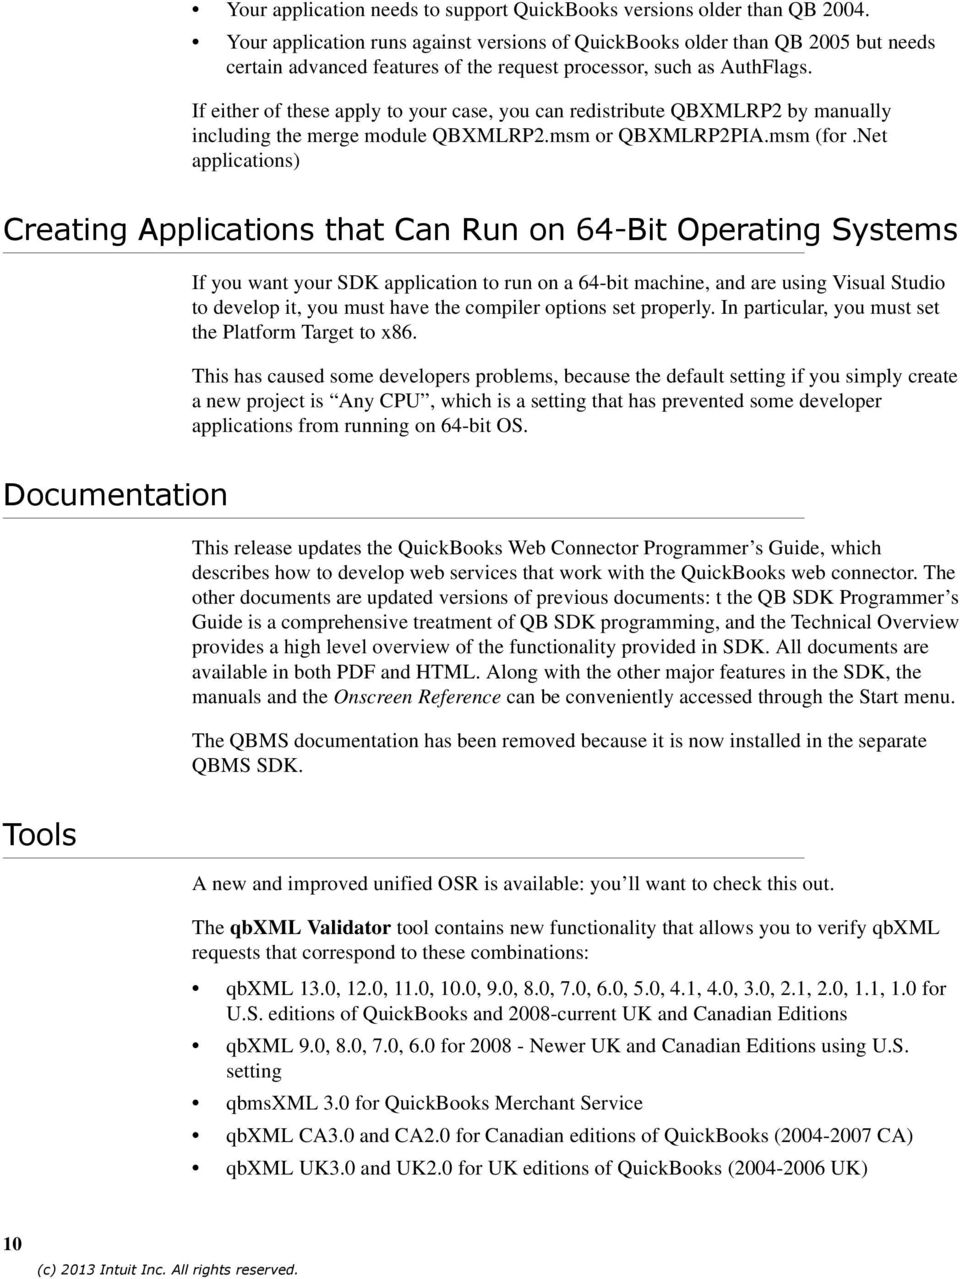 Release Notes, QuickBooks SDK 13.0 (11/07/2013) Welcome to the